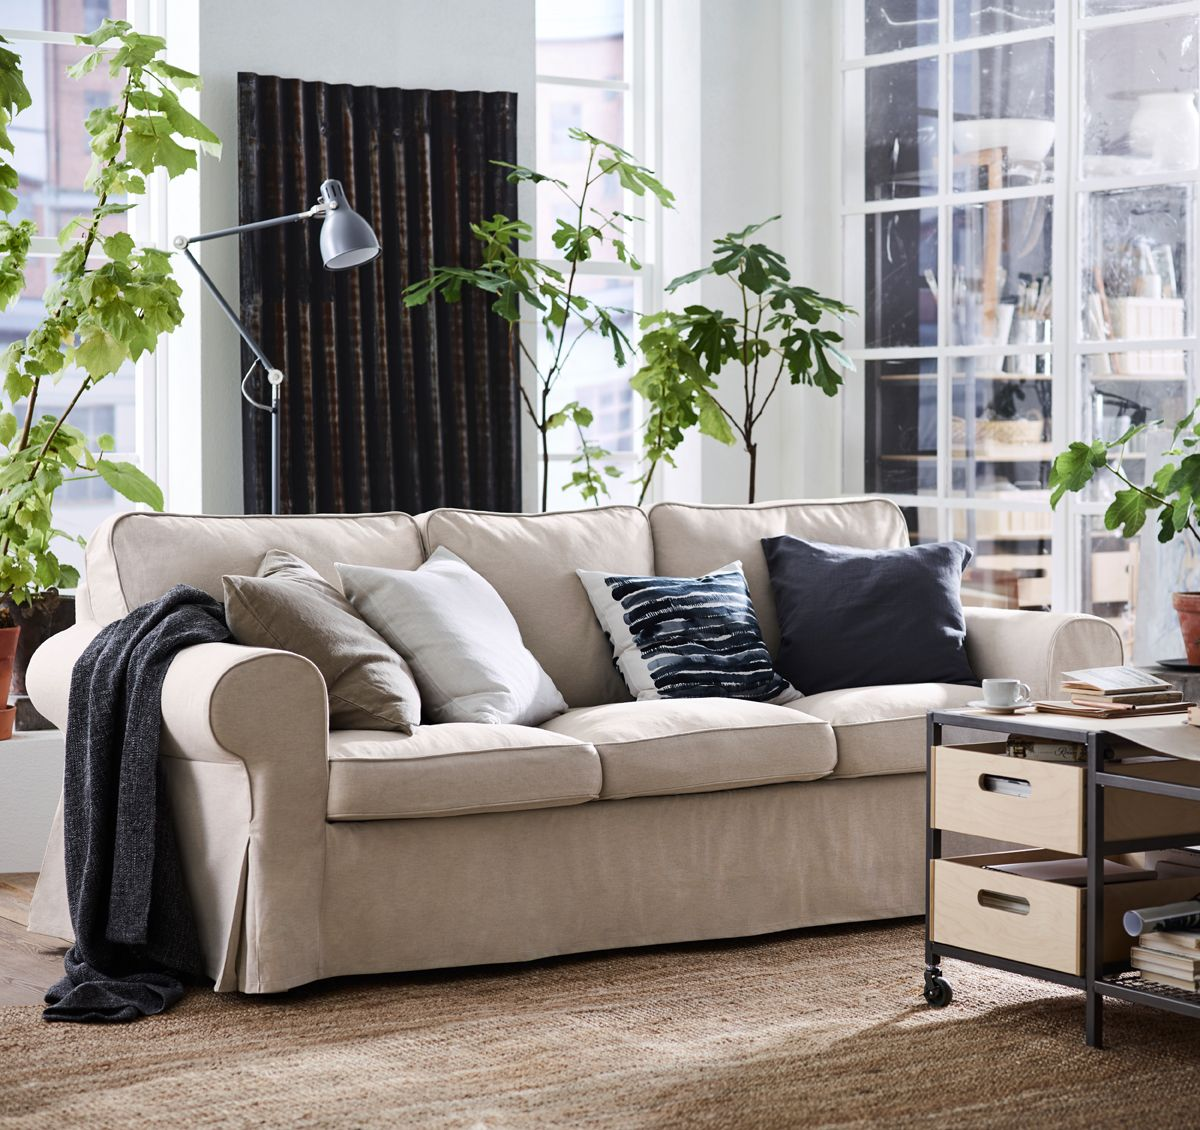 Sofa Abnehmbarer Bezug Ektorp Sofas In 2019 The Glaze Home Pinterest Sofa Ektorp